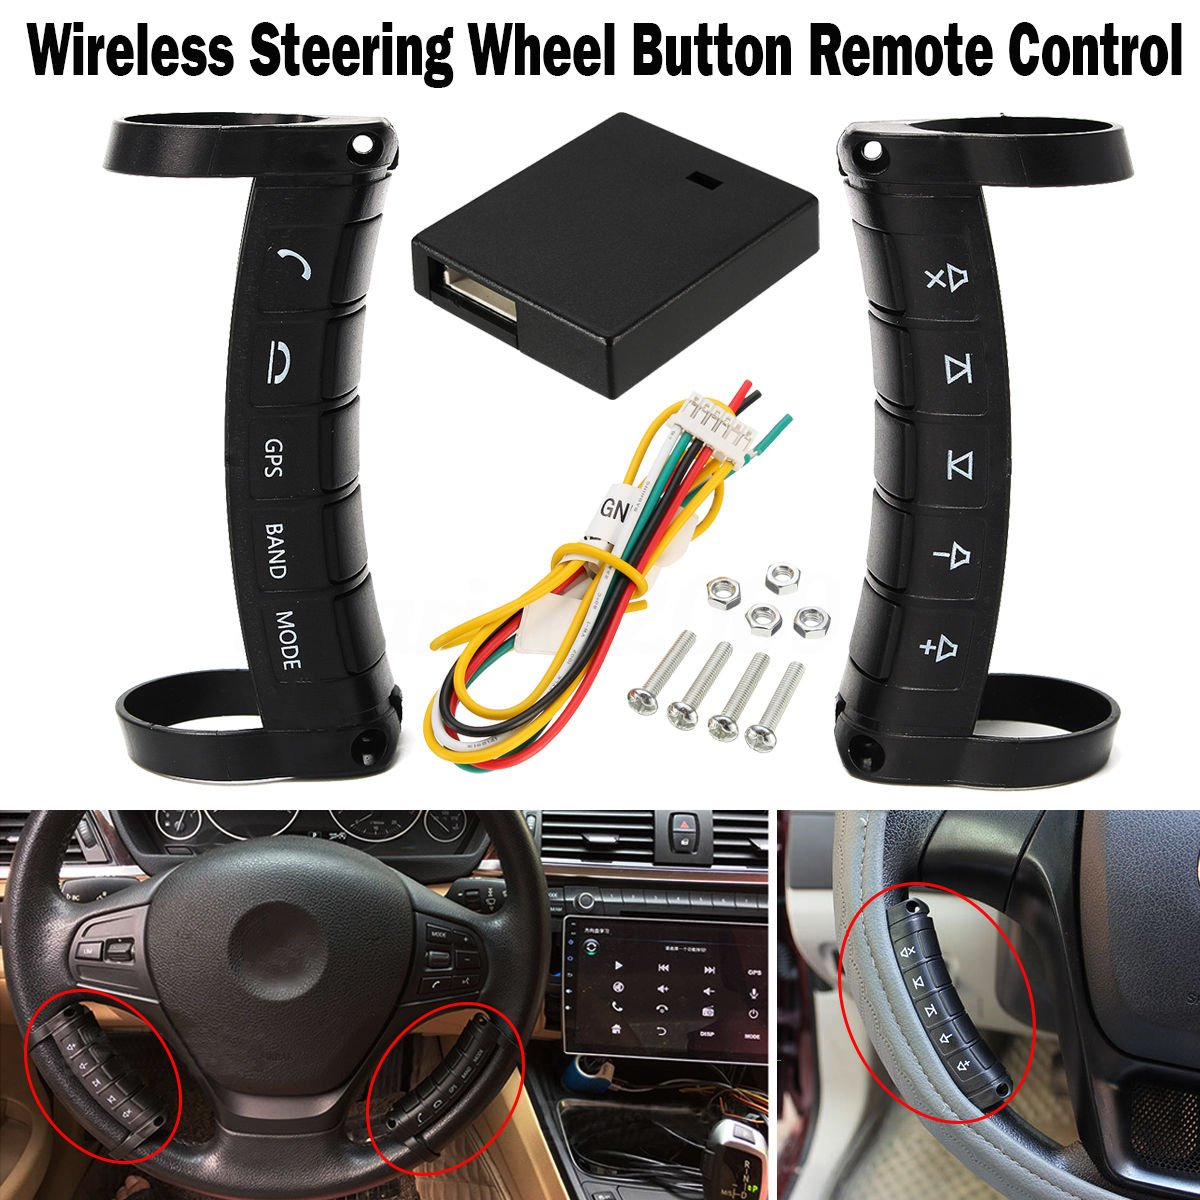 Universal Wireless Car Steering Wheel Button Remote Home Appliances Control Circuit Diagram Automotive For Stereo Dvd Gps Electronics